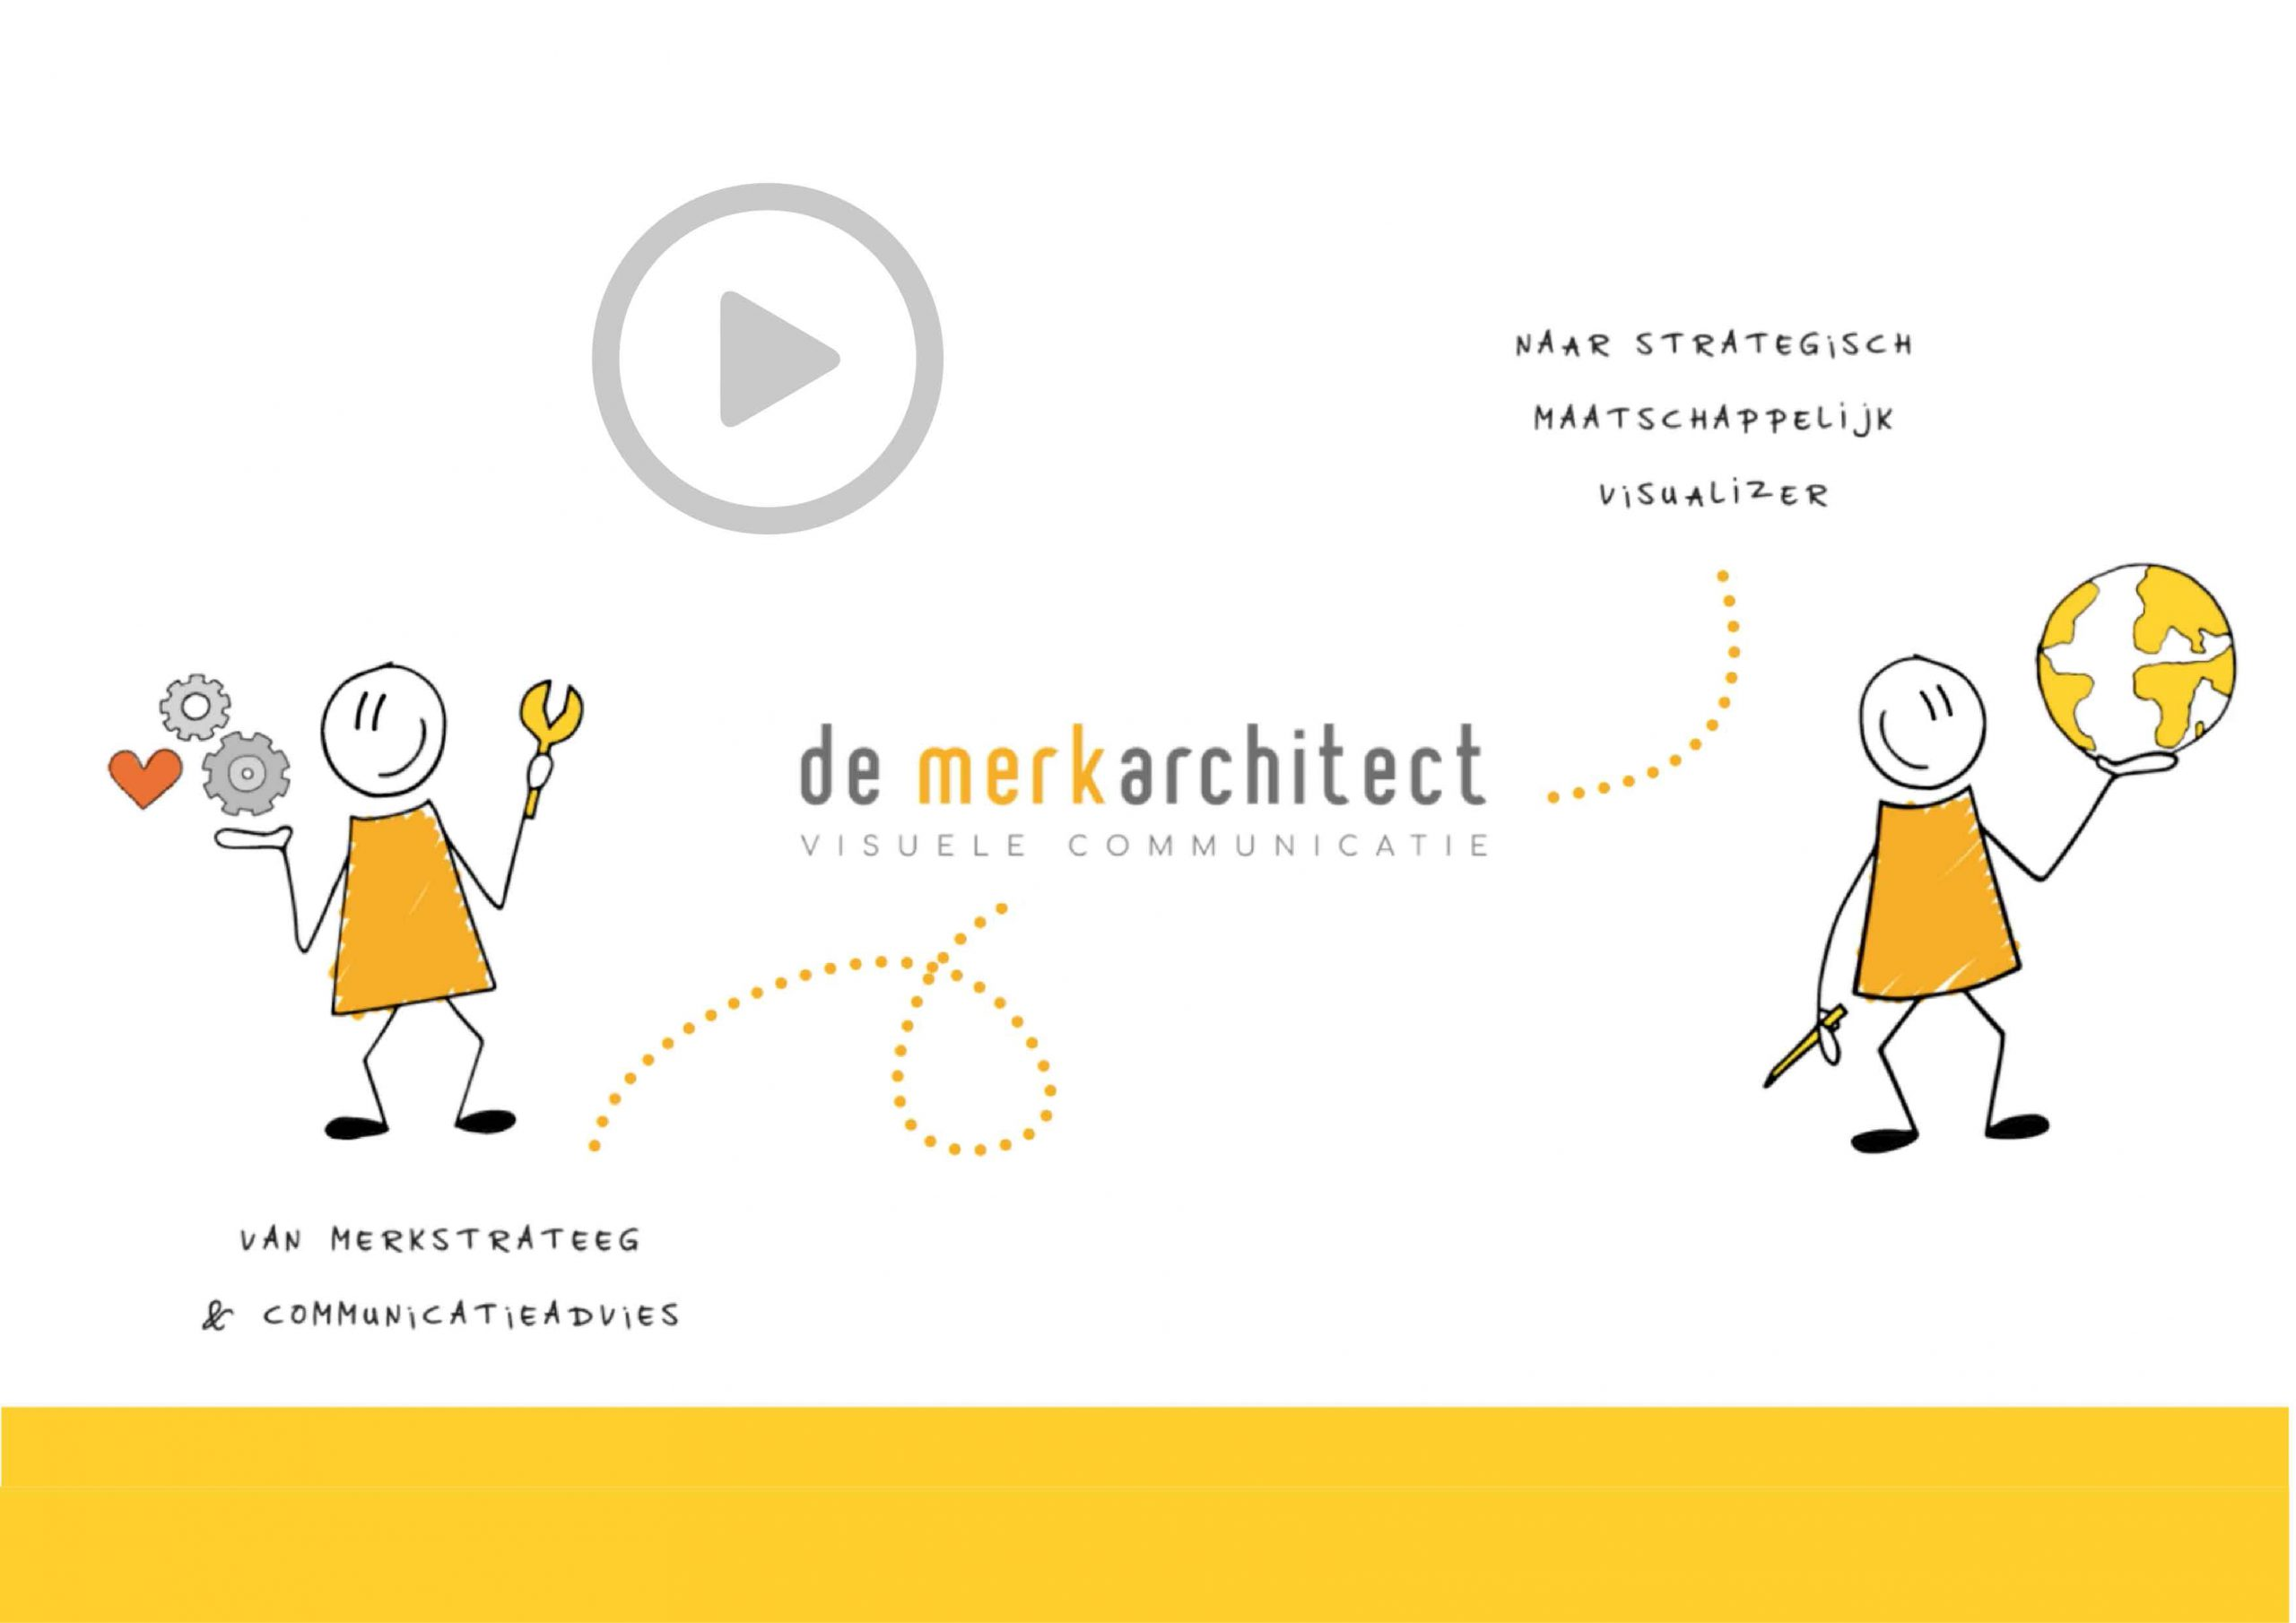 portfolio impressie Merkarchitect, praatplaten, animatie video's